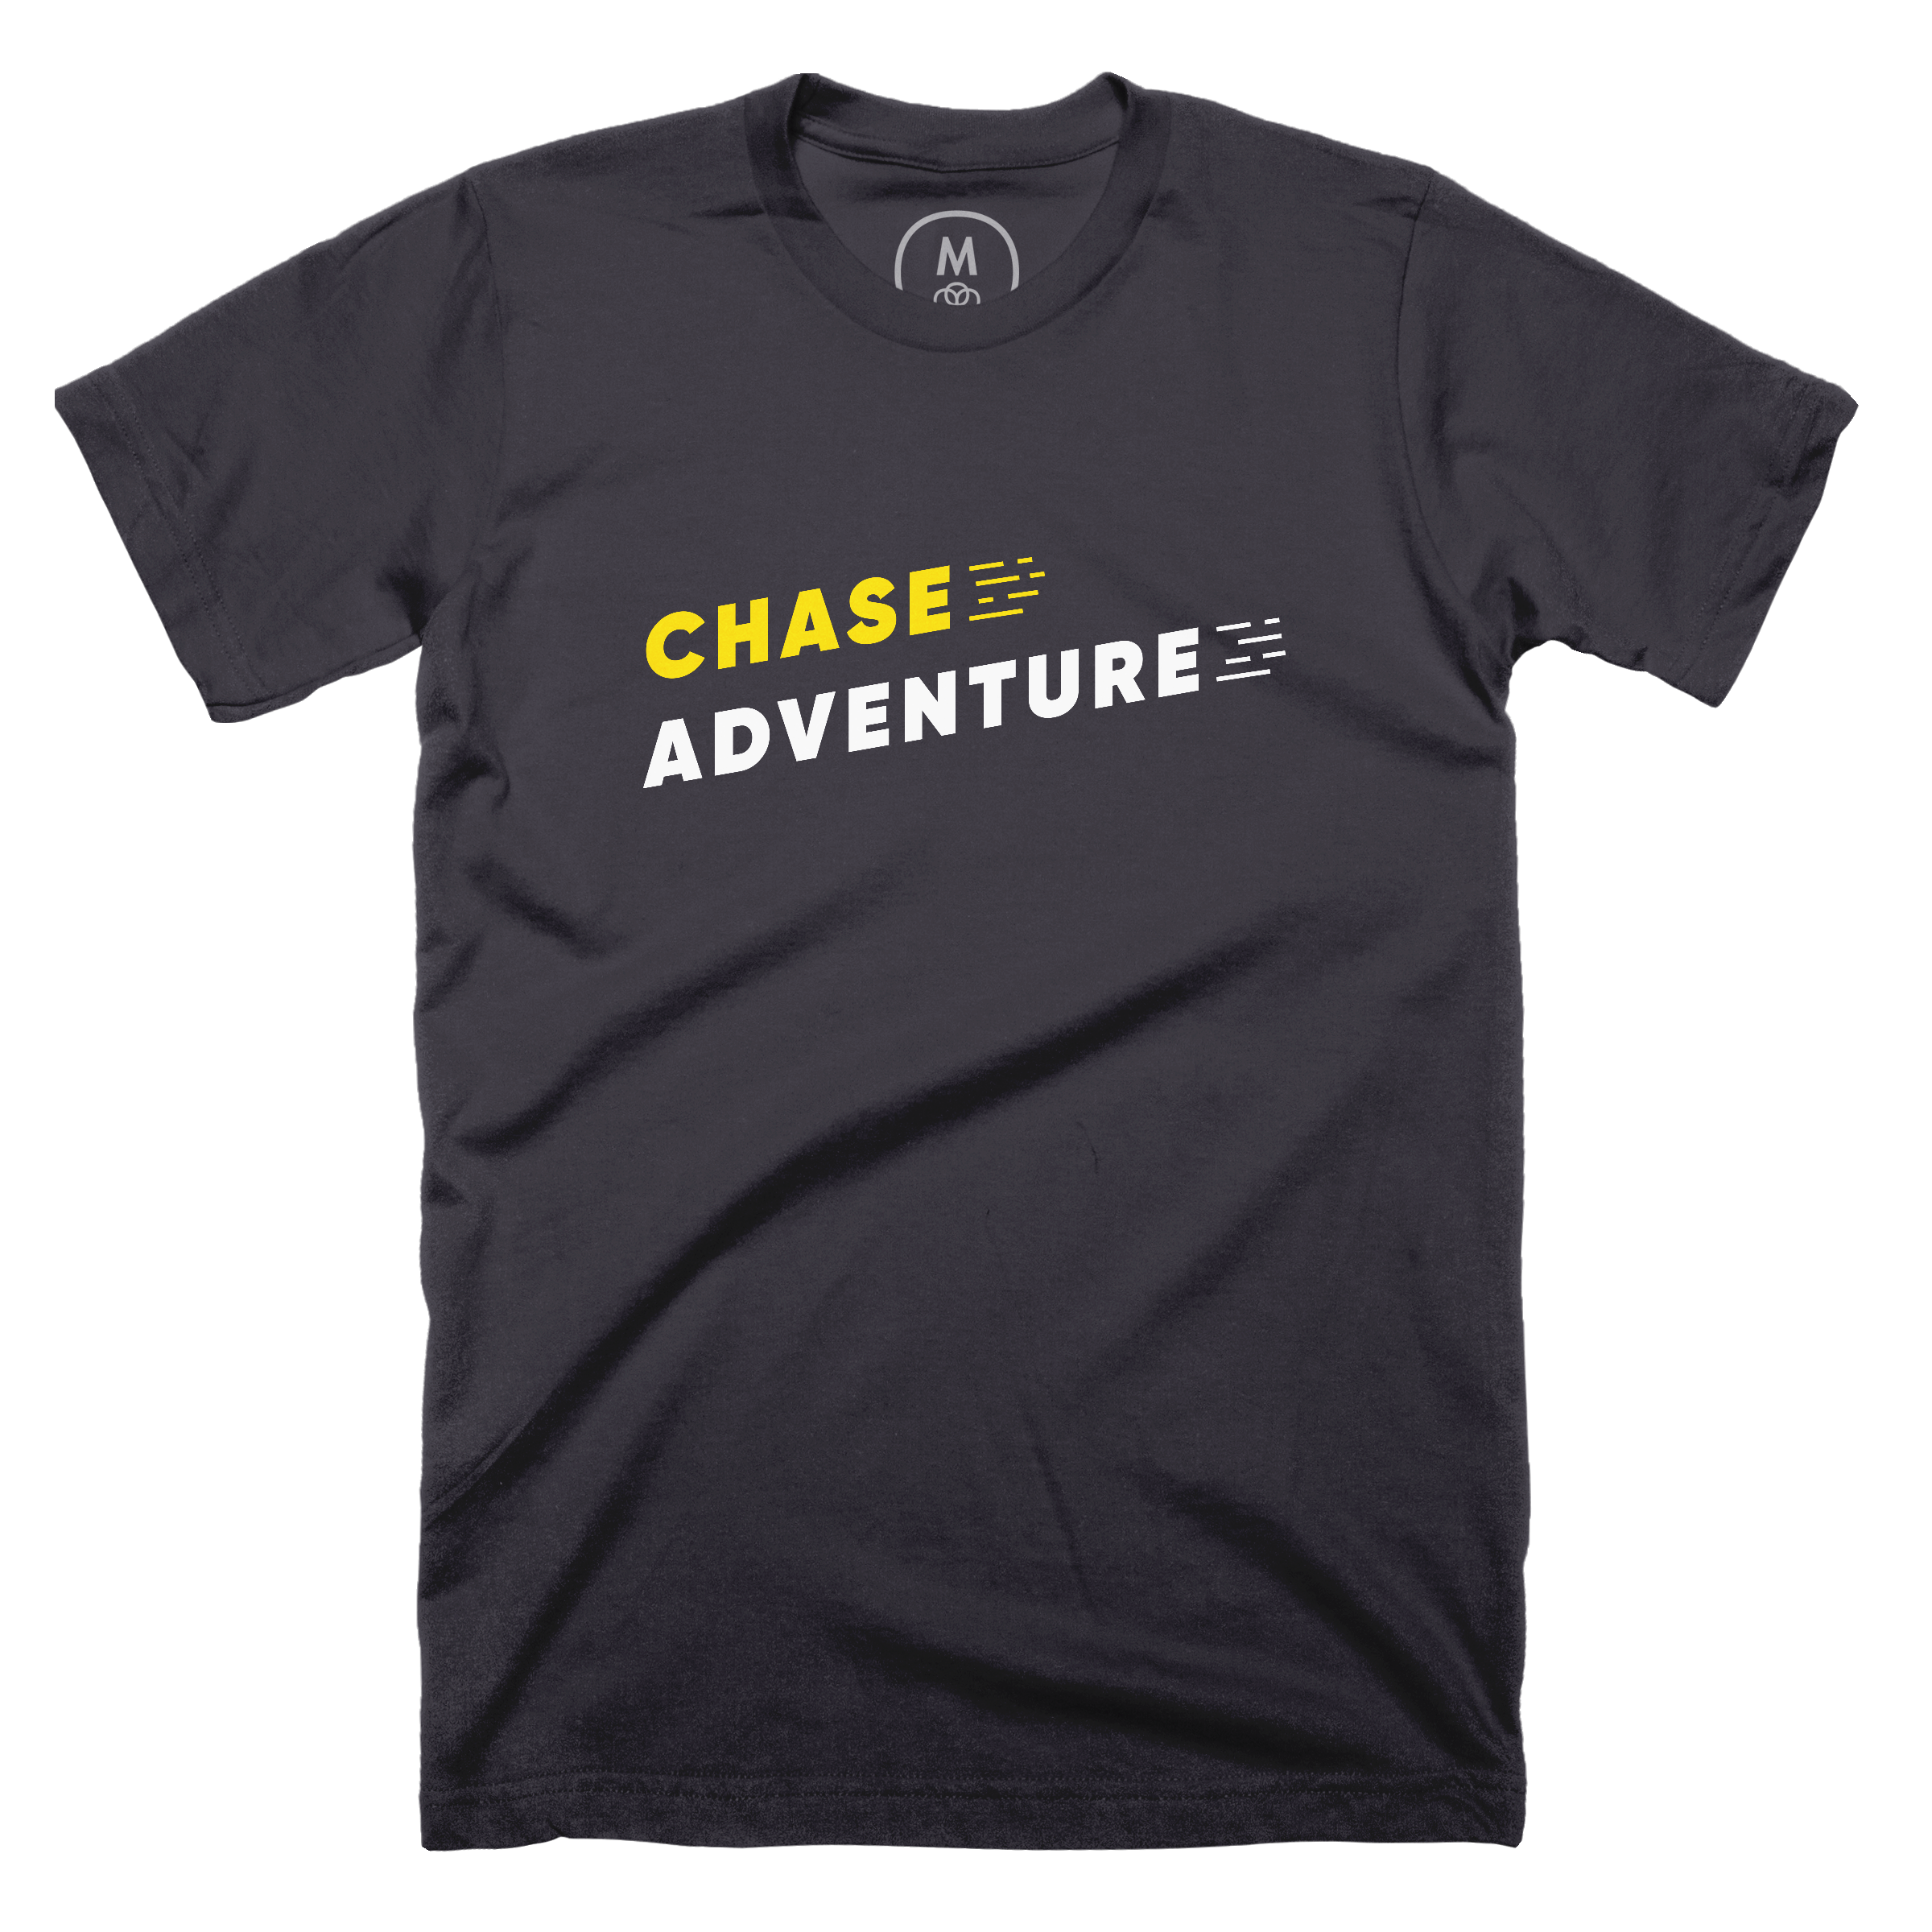 Chase Adventure